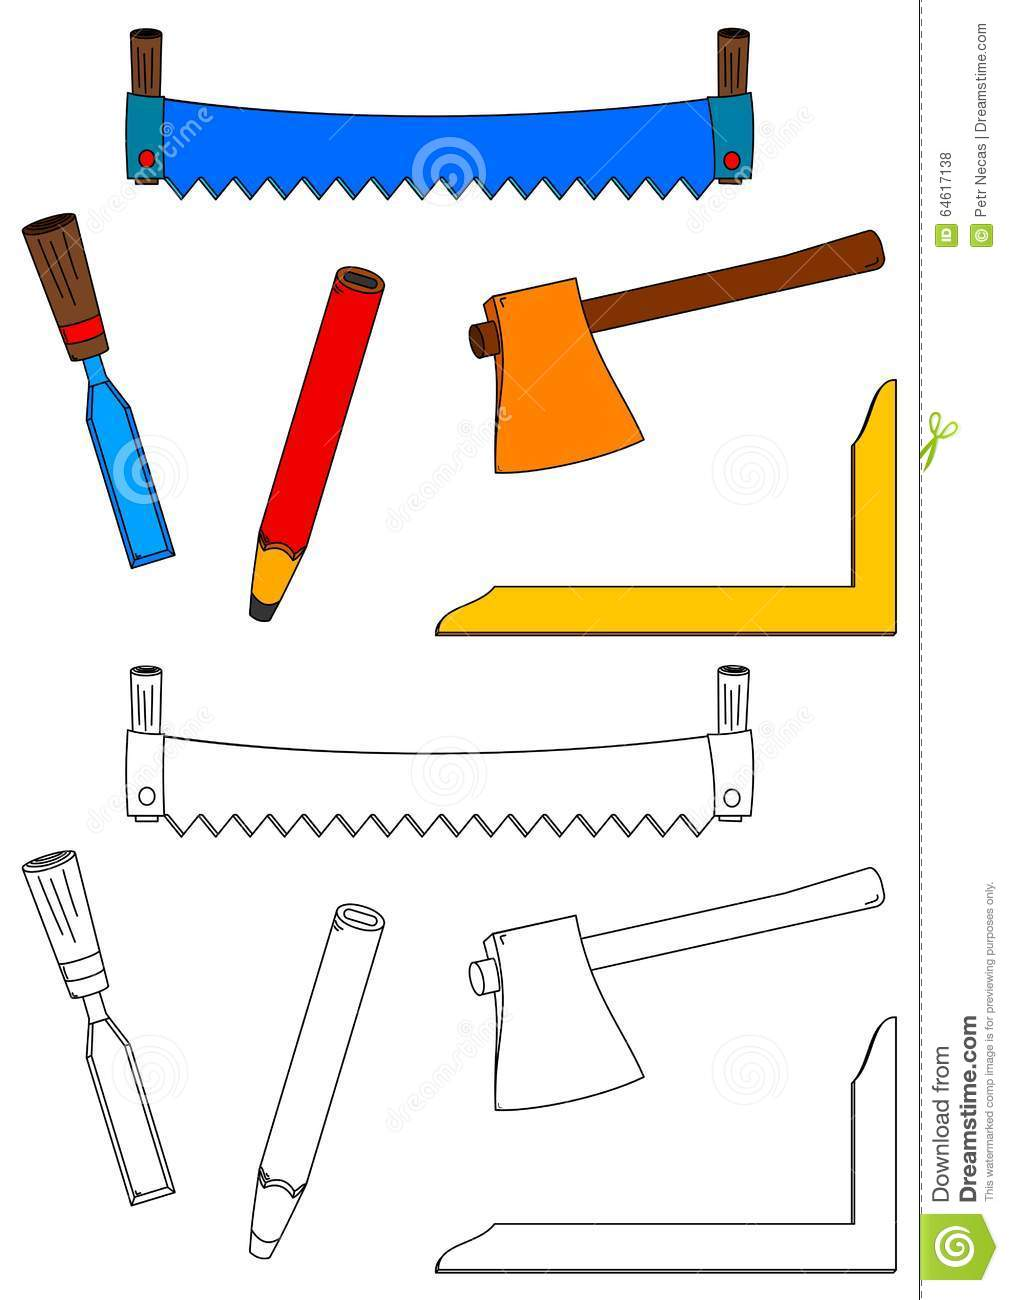 chisel and hammer coloring pages - photo#2